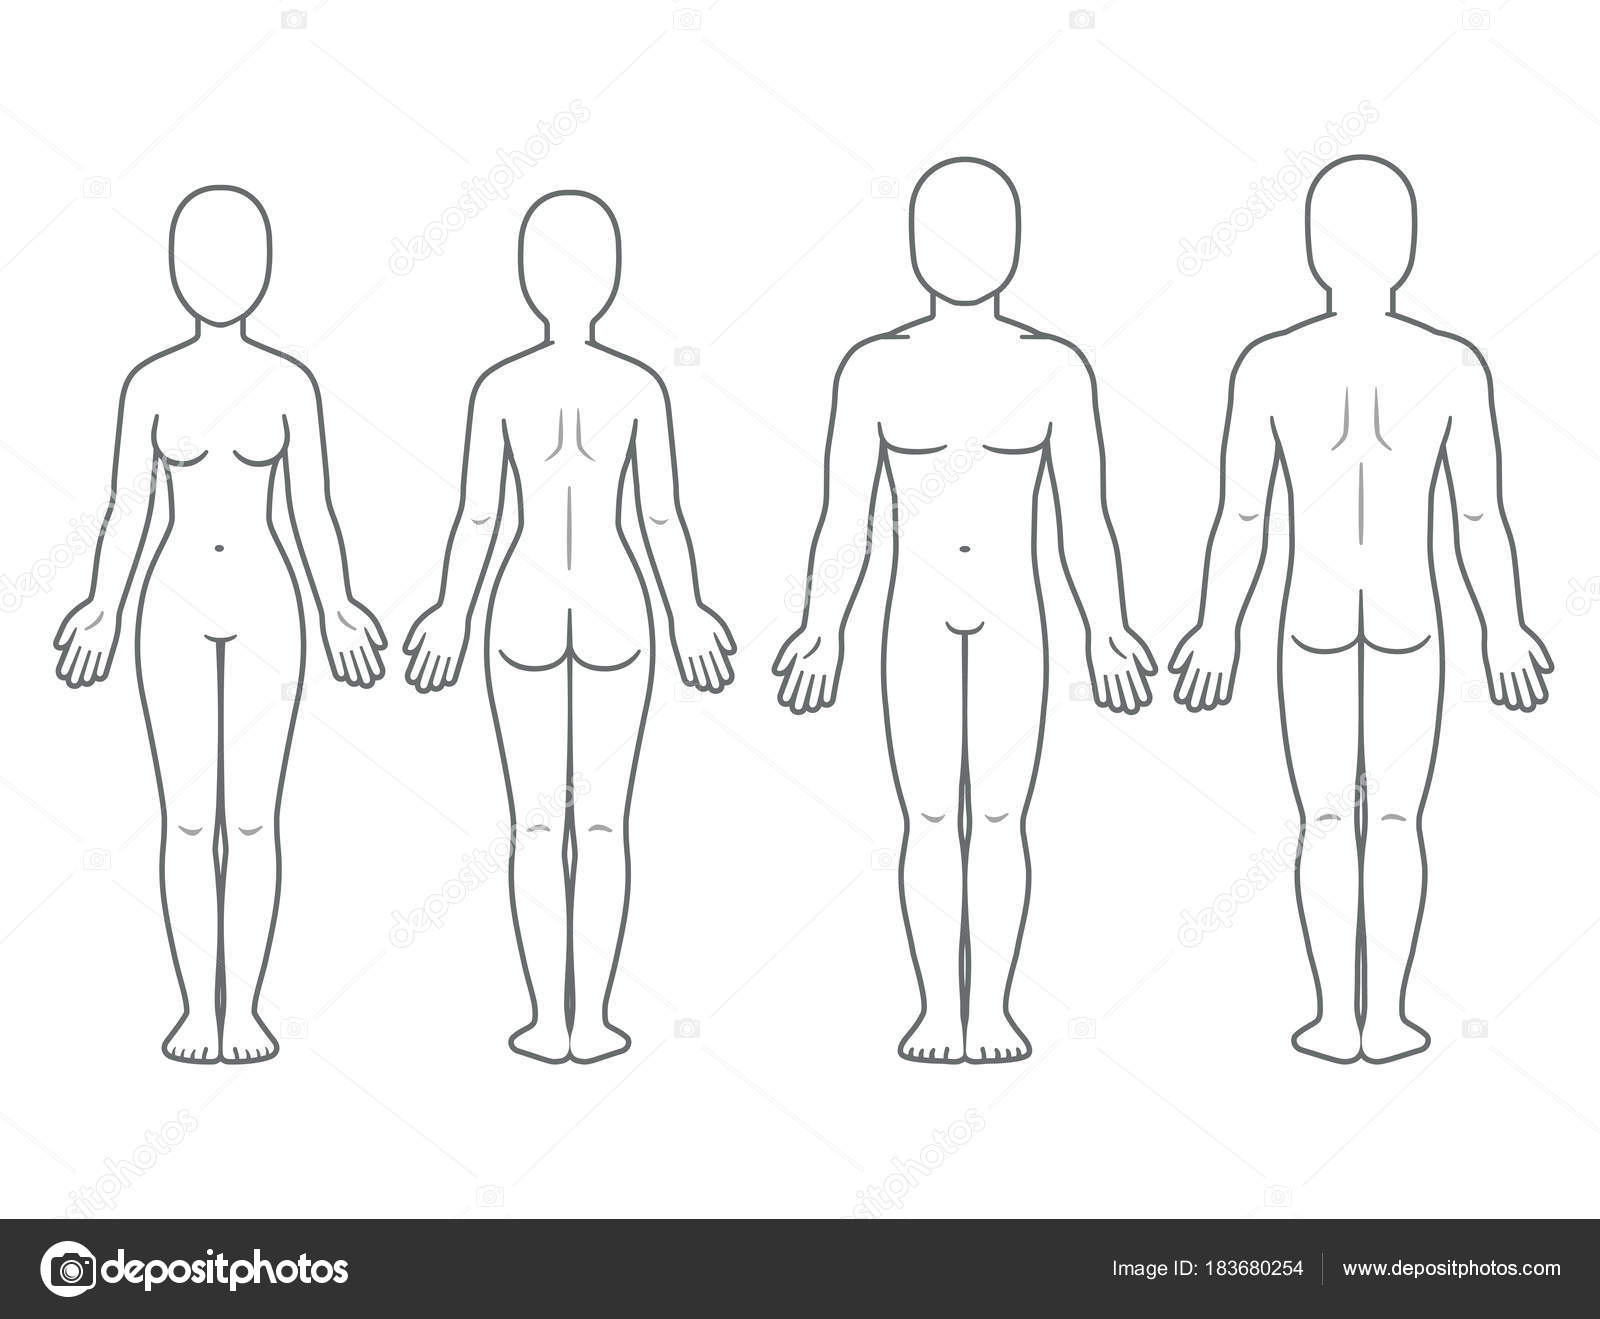 Male And Female Body Front Back View Blank Human Template For Medical Infographic Isolated Vector Illustration By Sudowoodo